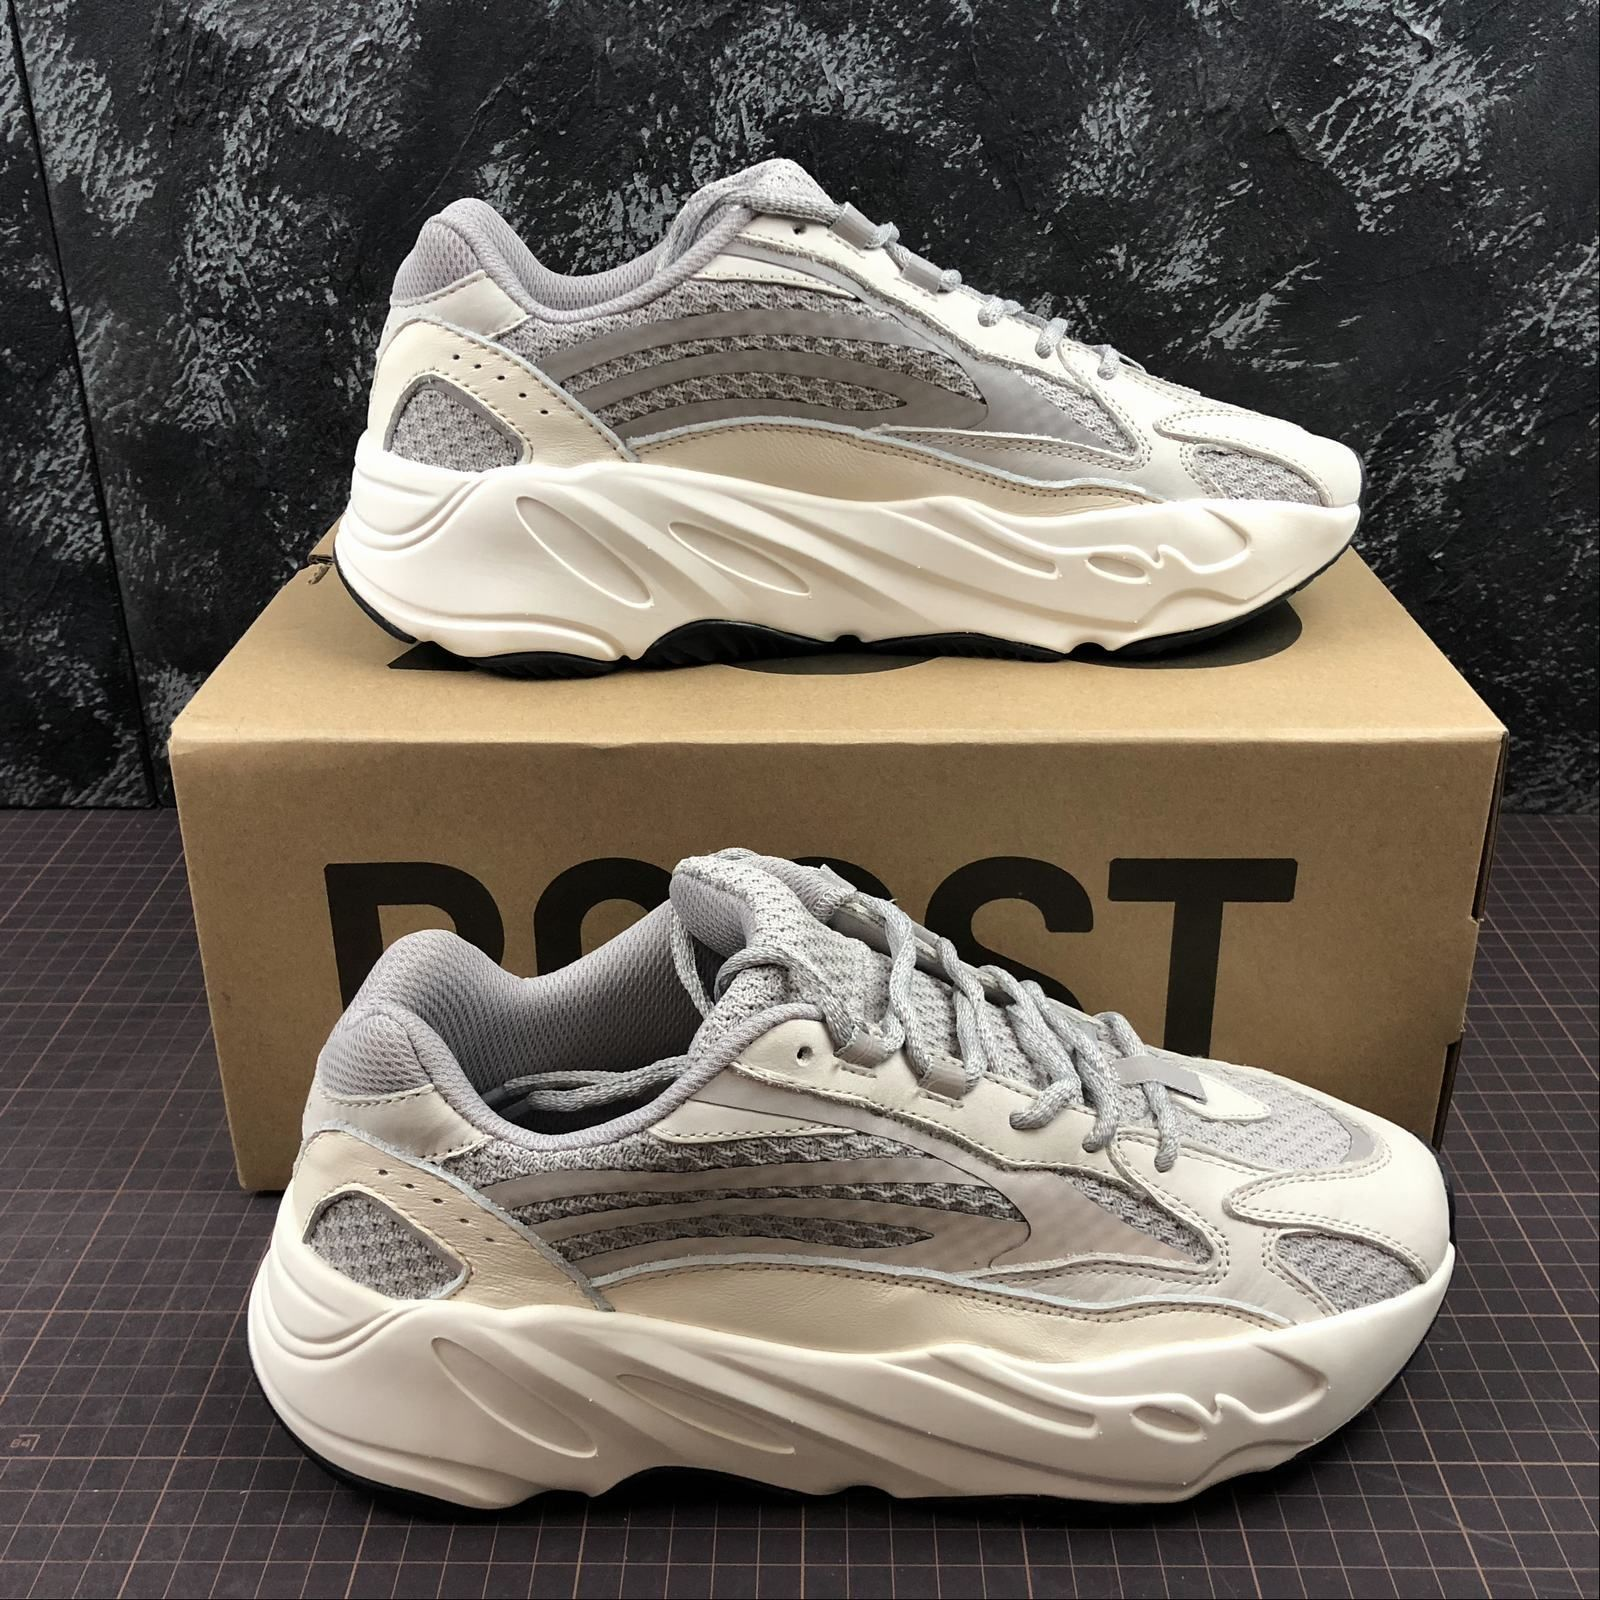 In Depth Every difference between adidas YEEZY 700 V1 vs V2 (UNRELEASED!)